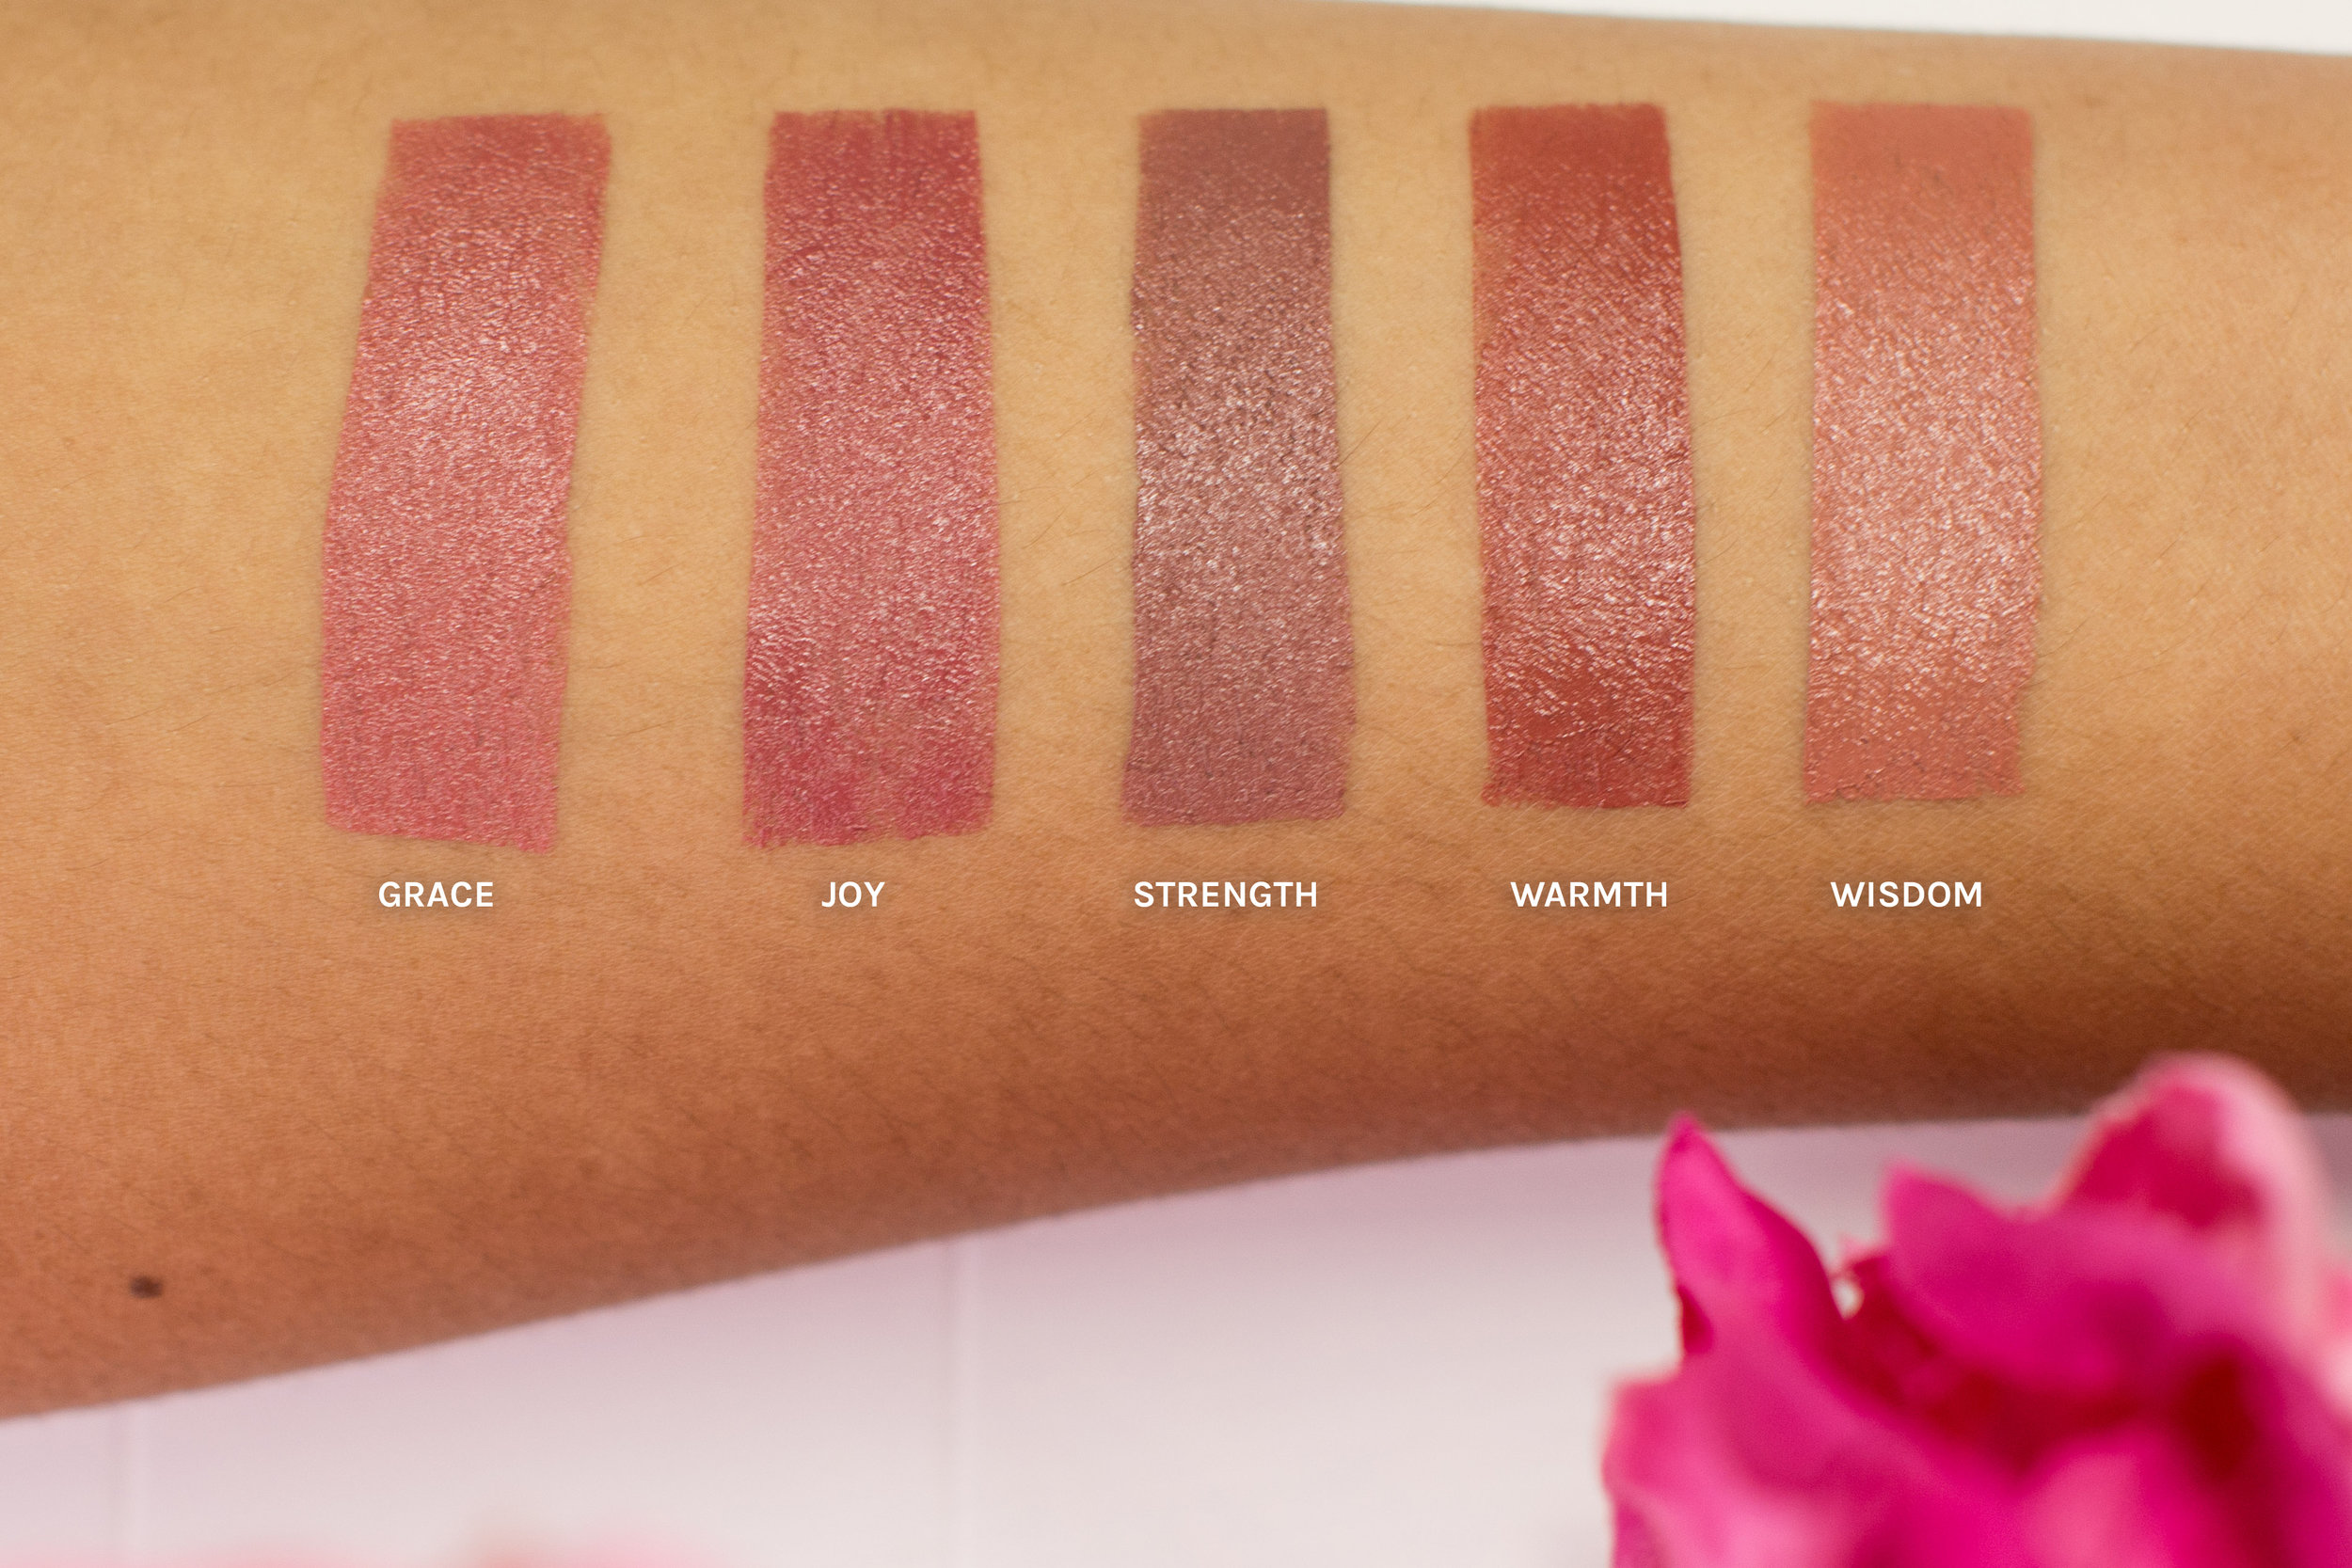 ARM-SWATCH_human-heart-nature_made-to-bloom_lipsticks_hhn_review-philippines_project-vanity_2019-2 (2).jpg